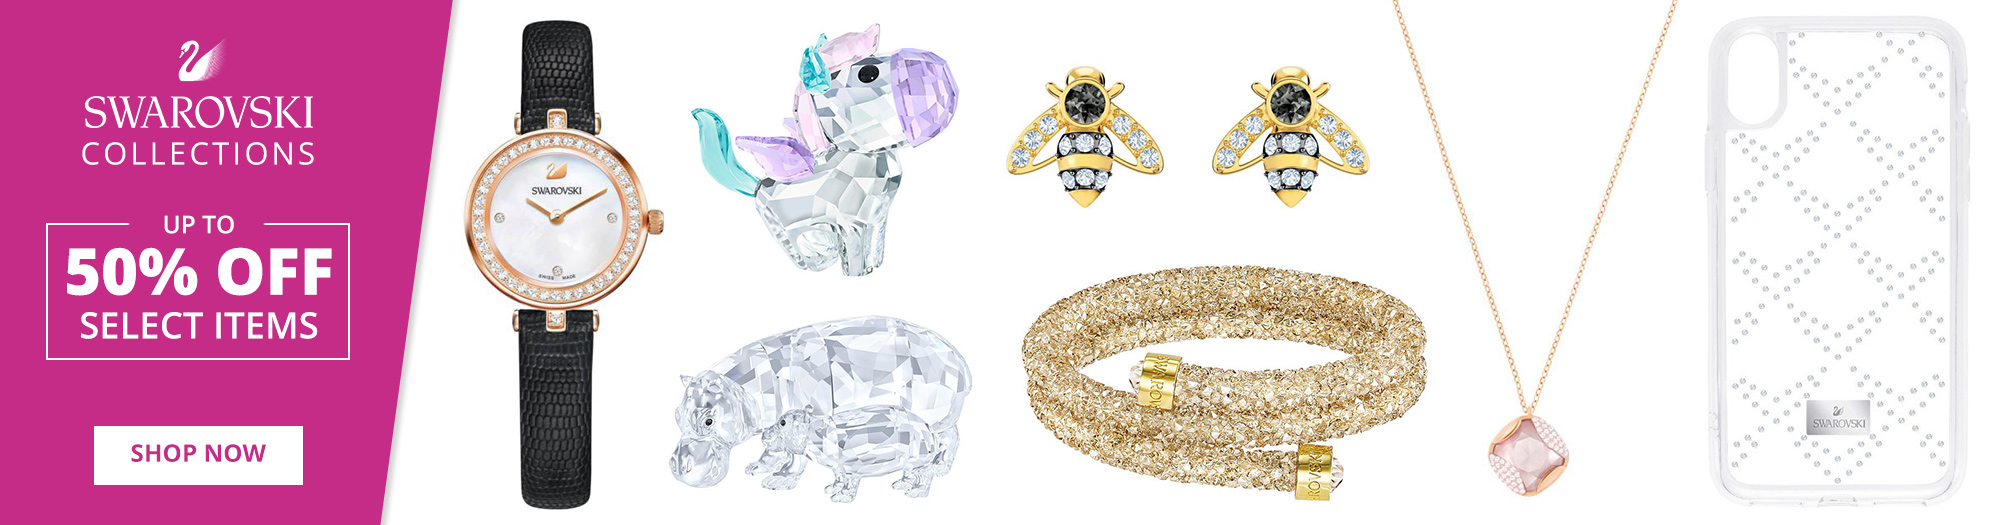 Swarovski collections limited